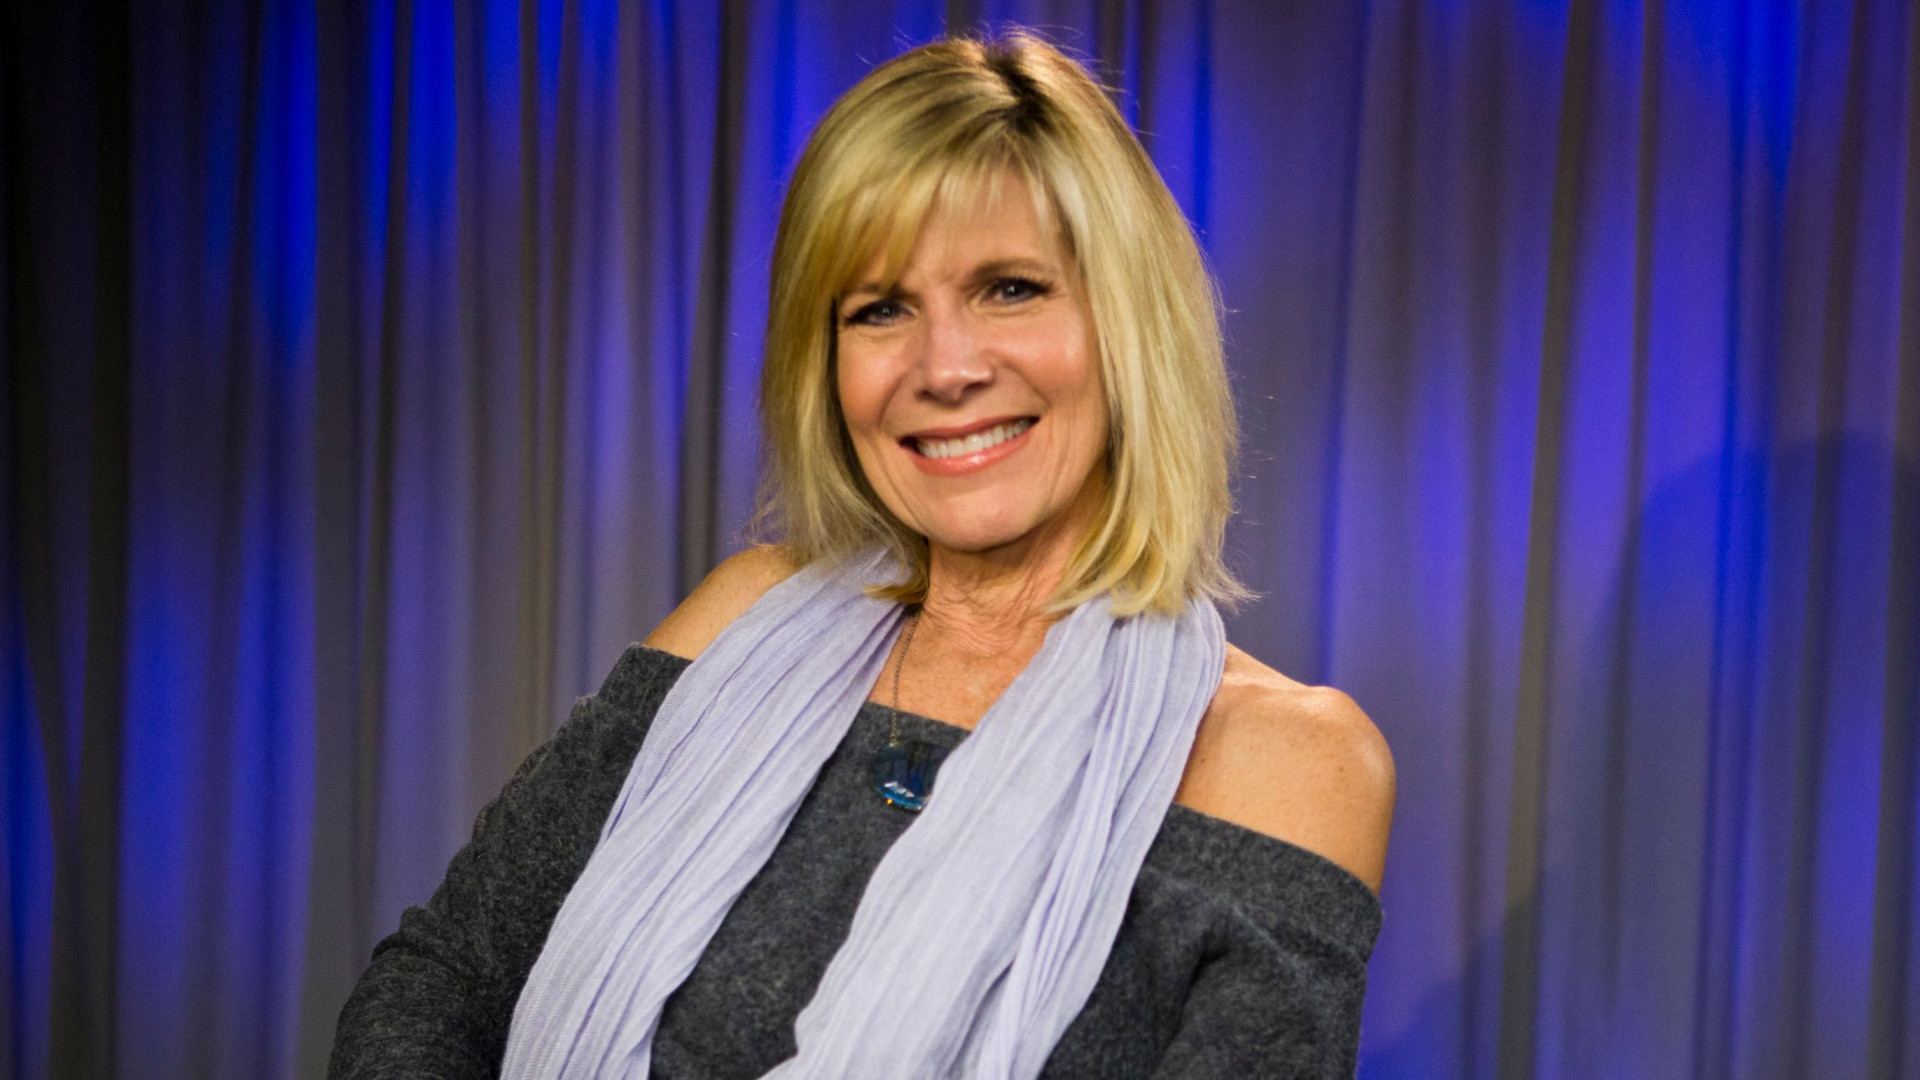 Debby Boone: Rosemary Clooney Loved Being a Grandmother to Her 4 Kids